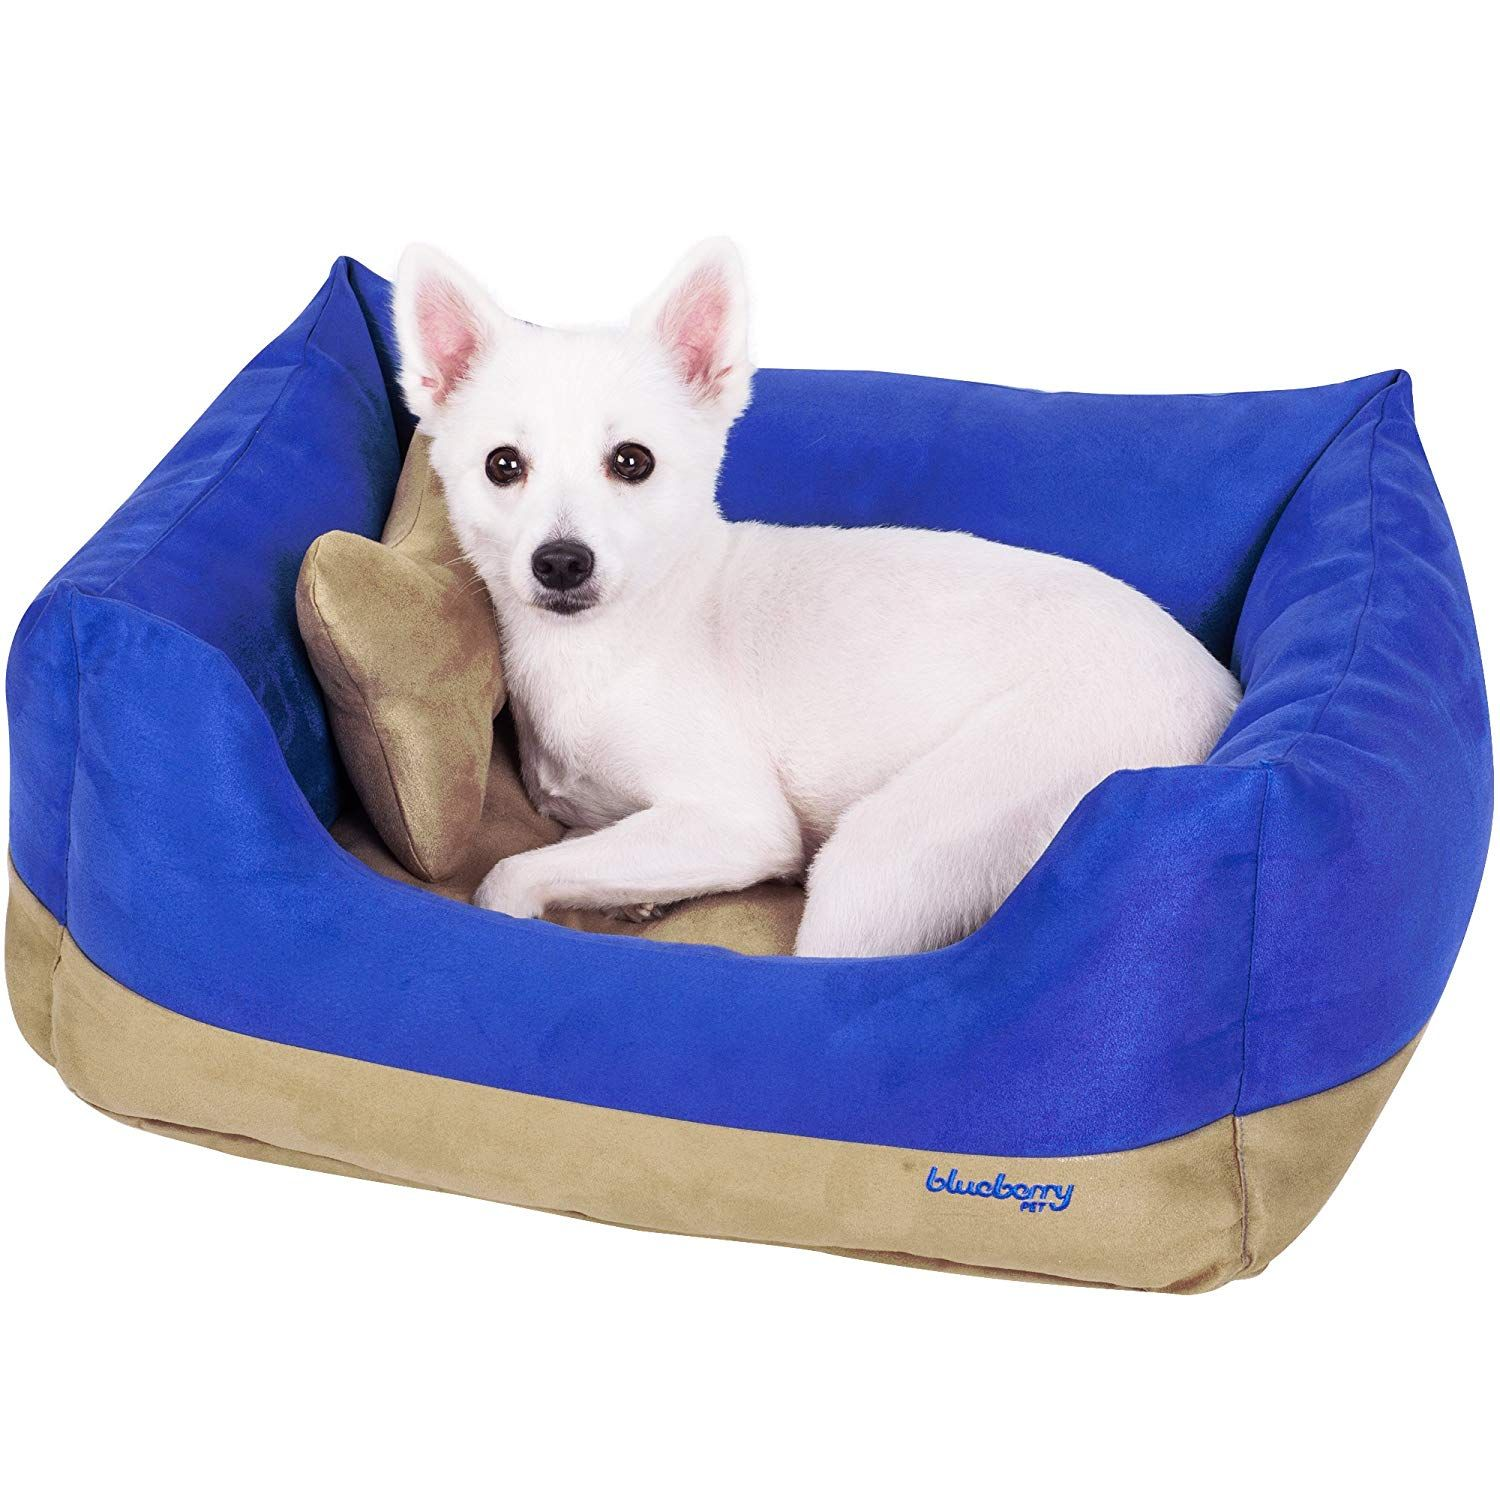 Blueberry Pet Heavy Duty Pet Bed or Bed Cover, Removable